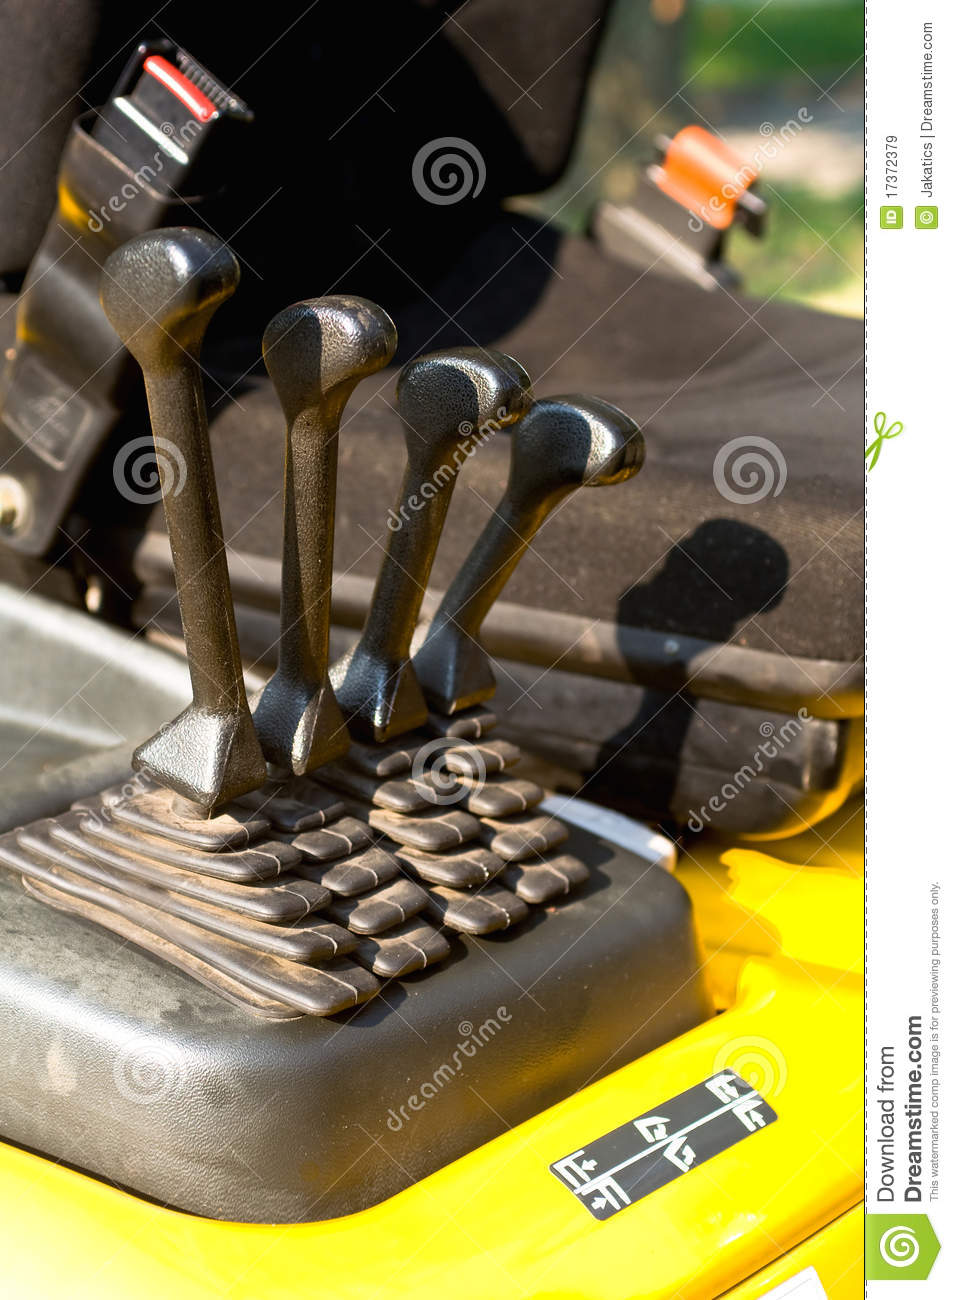 Forklift Control Levers : Operating levers on a forklift truck royalty free stock